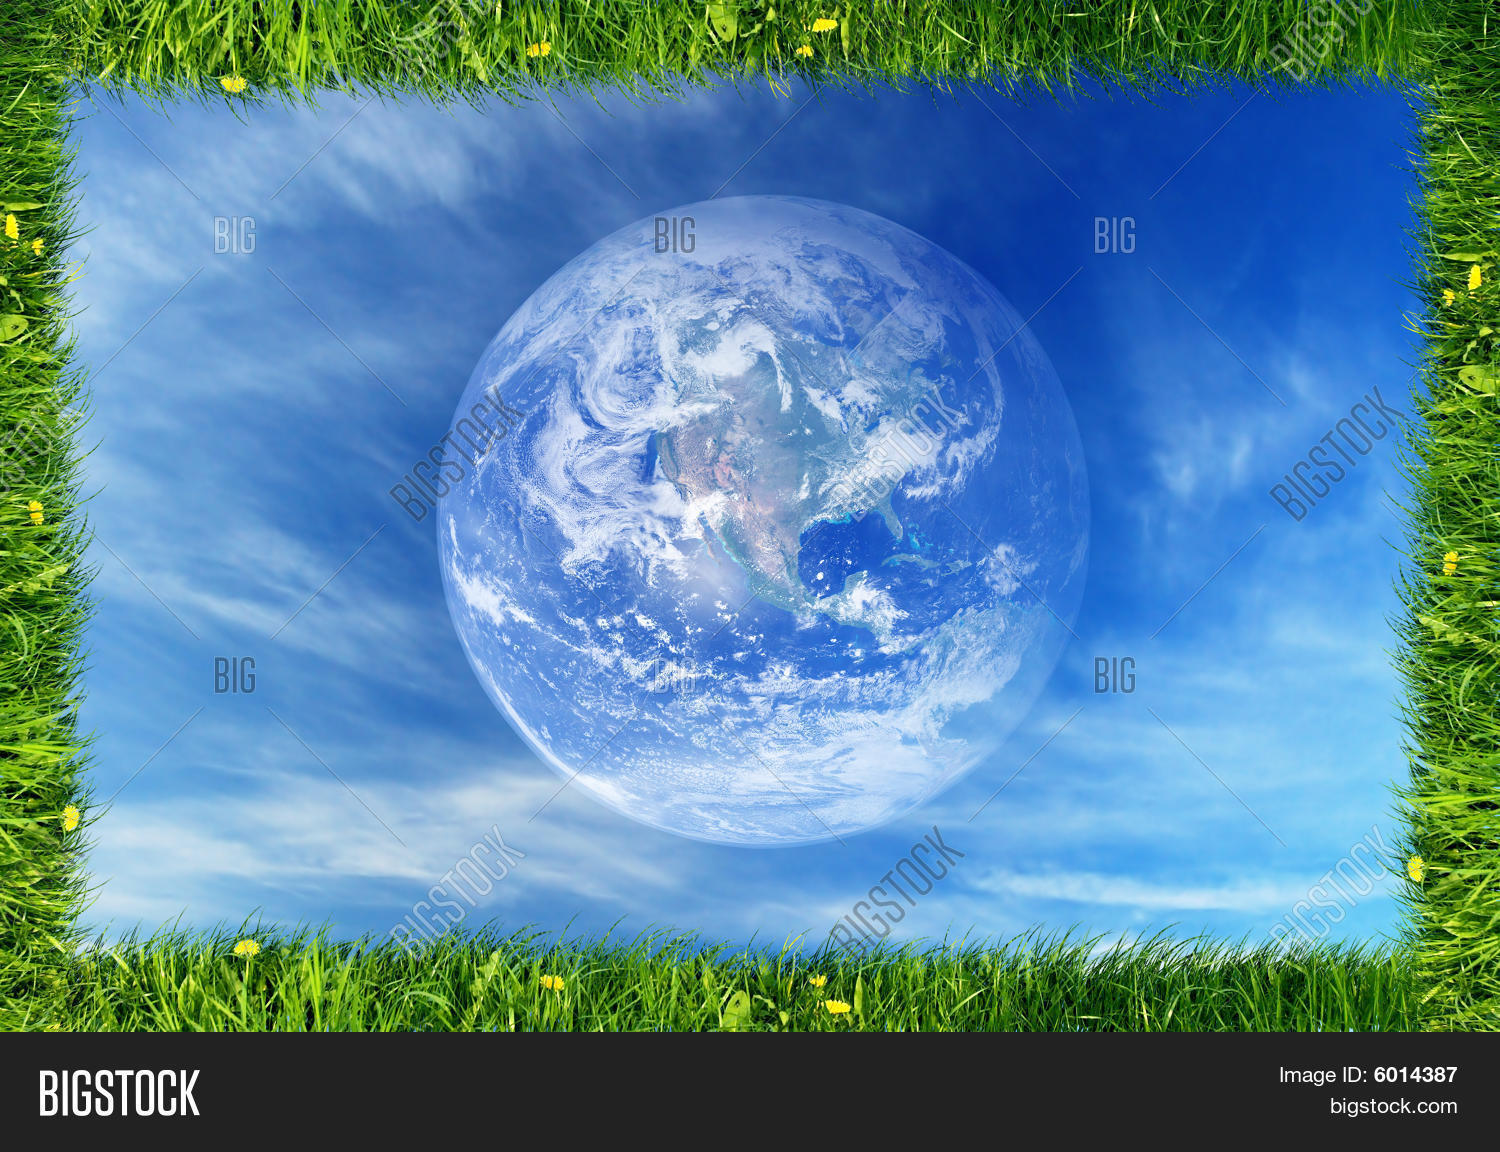 Nature Frame Earth Image & Photo (Free Trial) | Bigstock